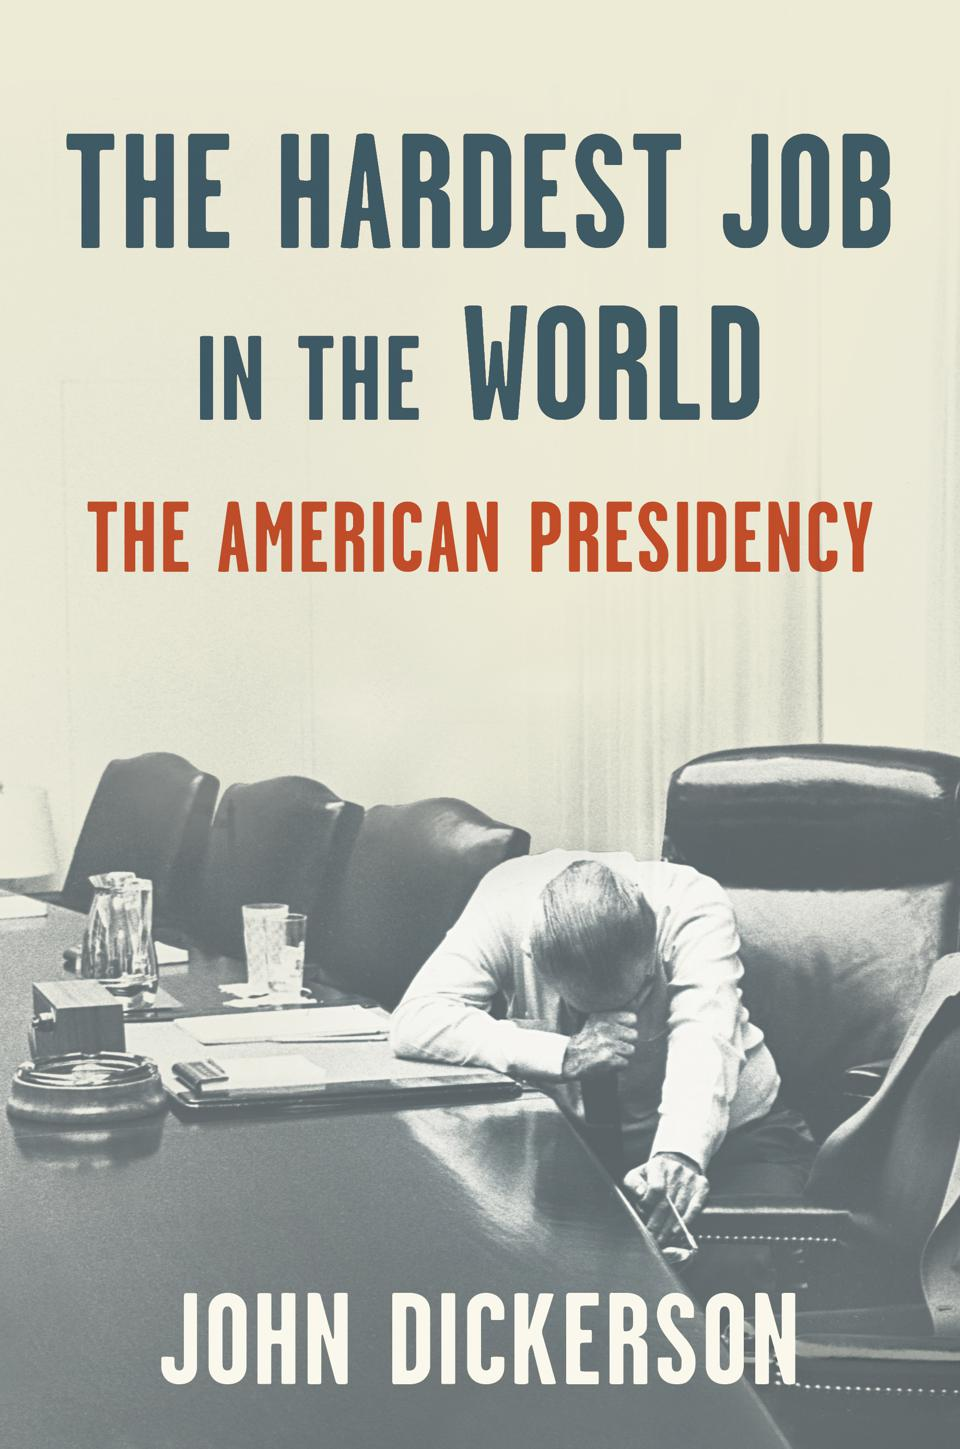 ″The Hardest Job in the World: The American Presidency″ book